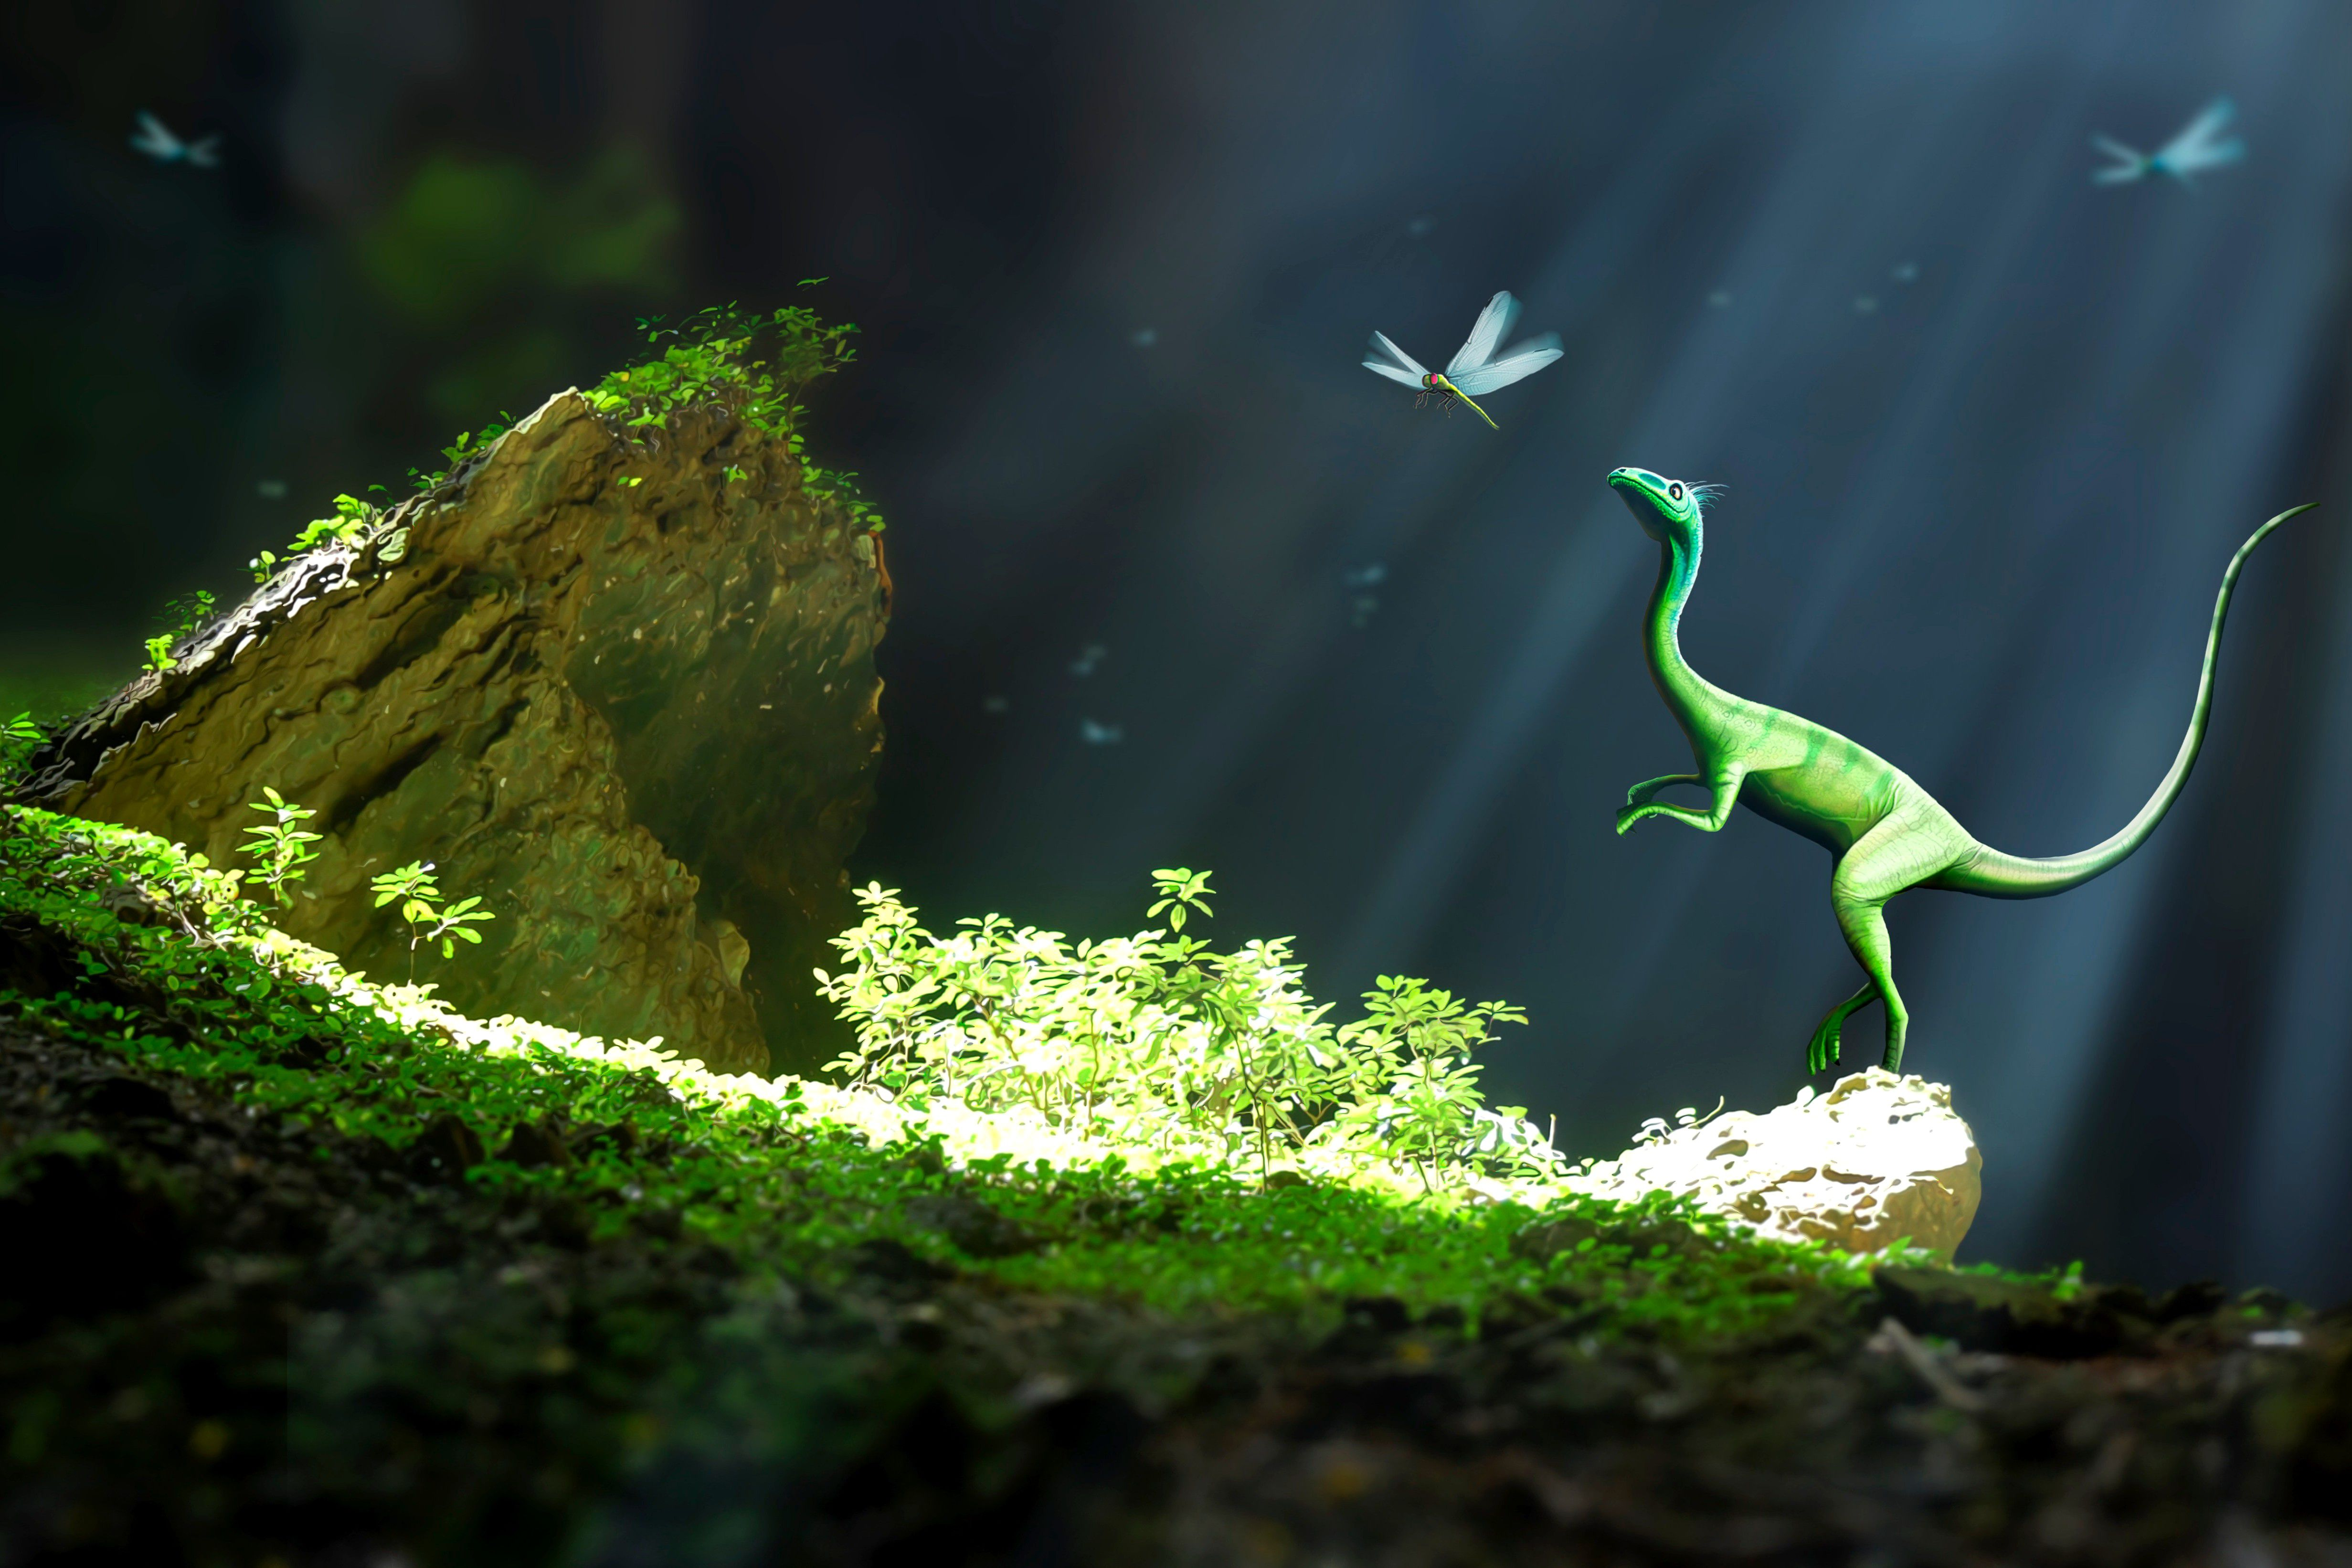 A green compsognathus checks out a dragonfly in a ray of sunlight